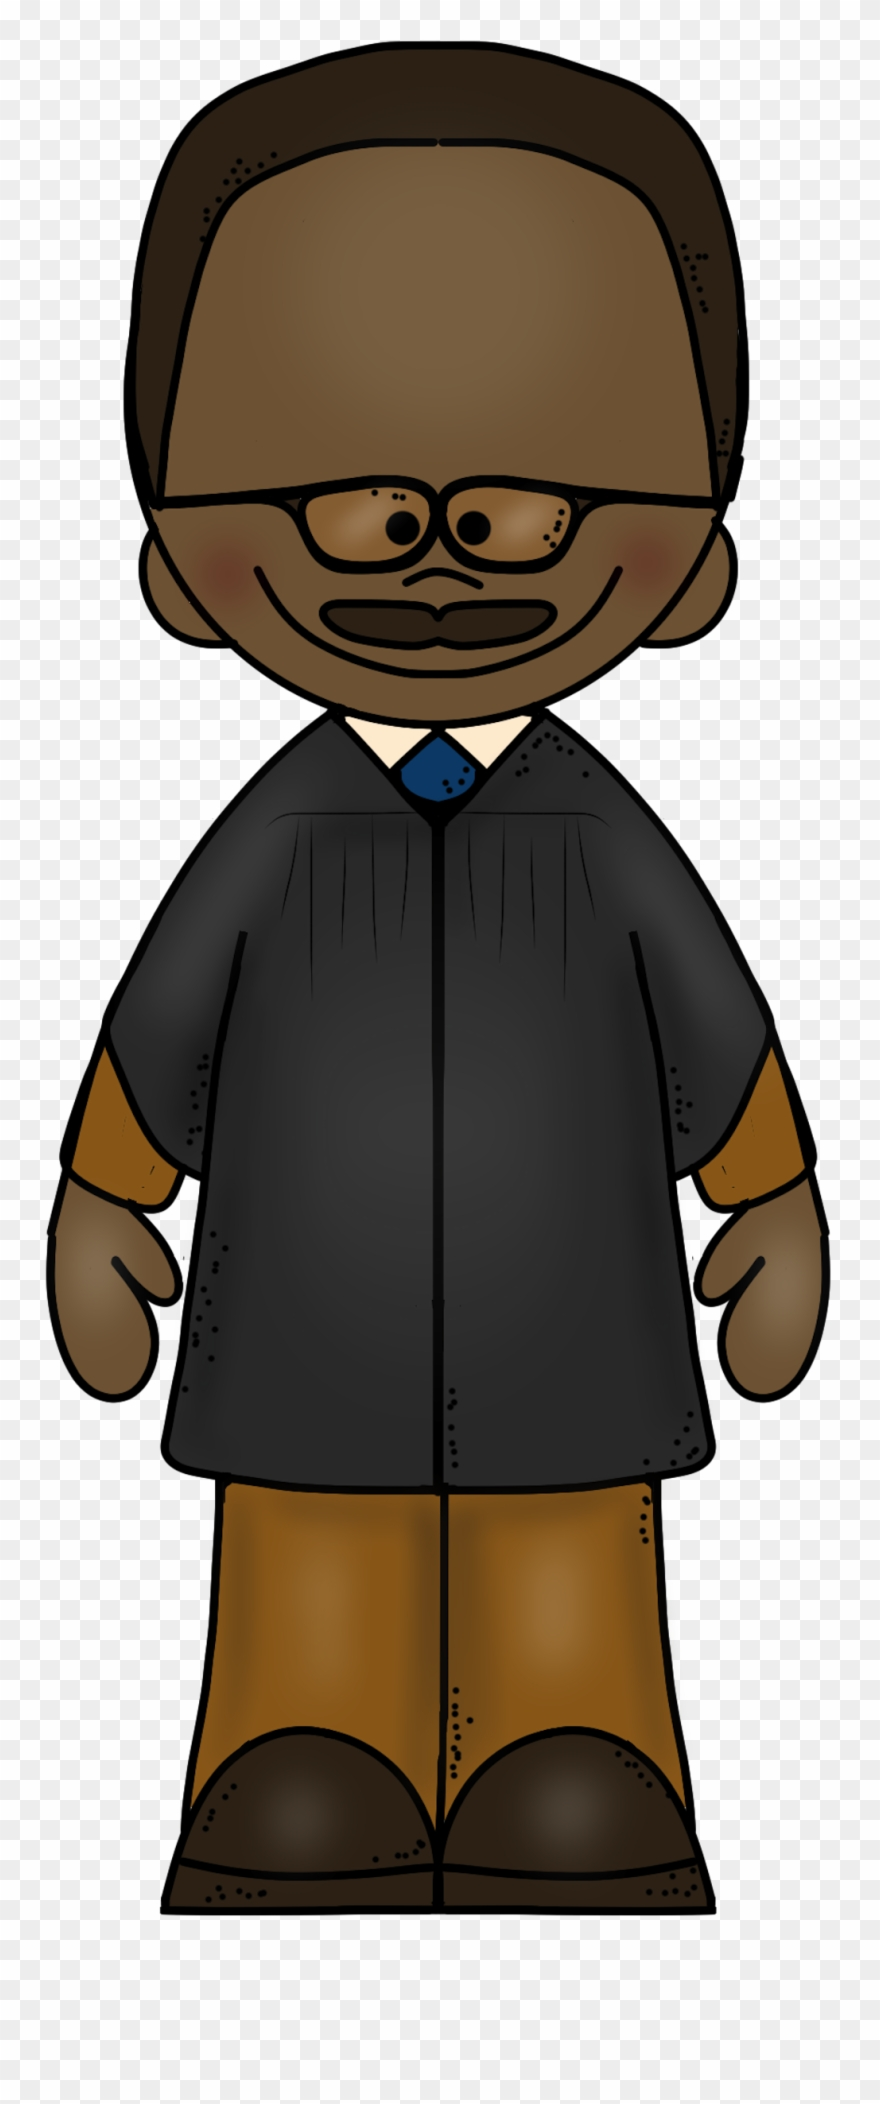 African american man clipart clip art black and white library Book Units Teacher African American Man Clip Art African - Png ... clip art black and white library